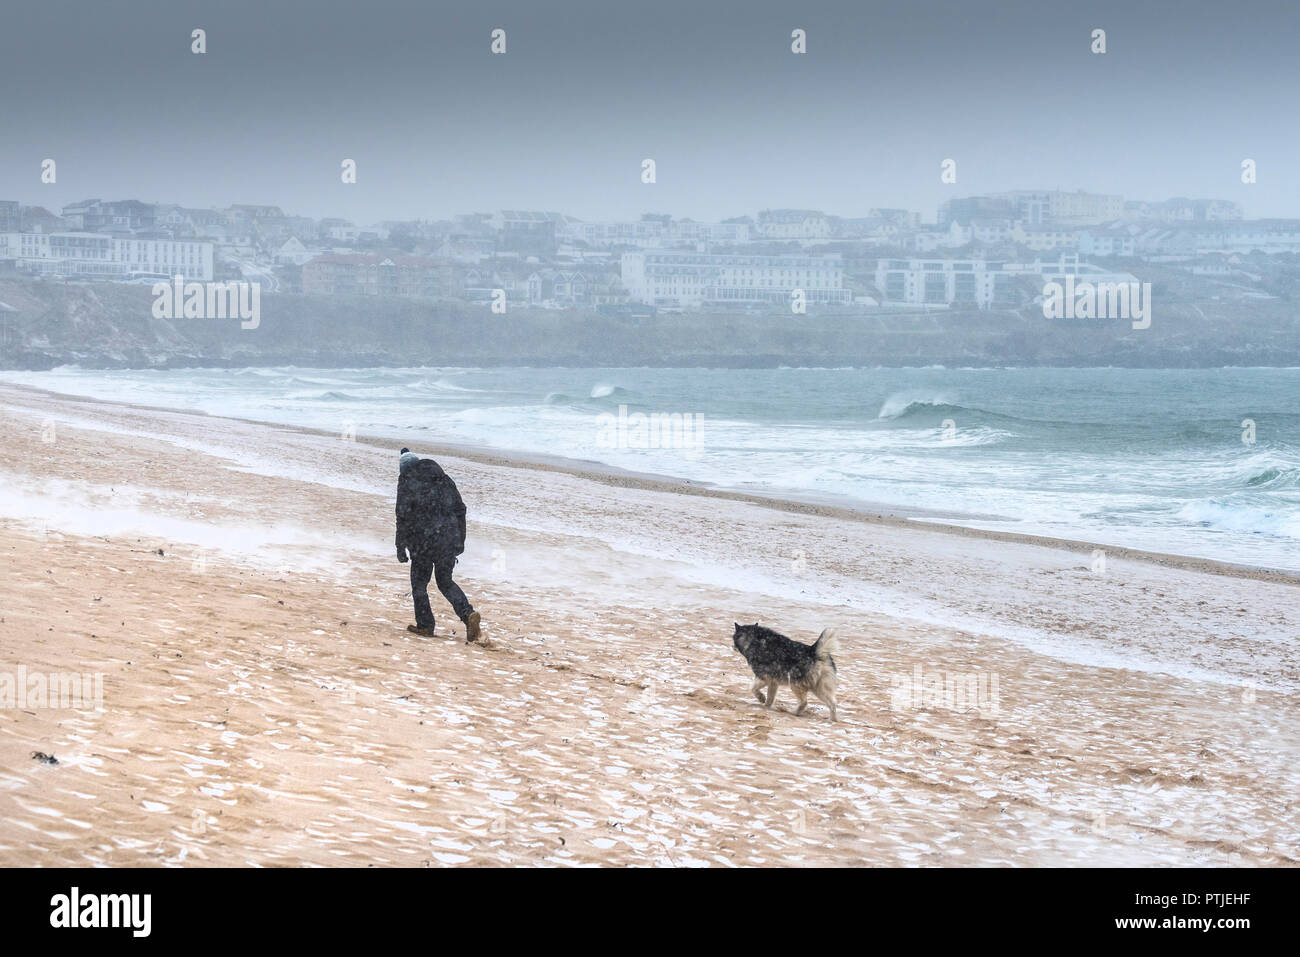 Snow falling as a man walks with his dog across Fistral beach in Newquay in Cornwall. - Stock Image